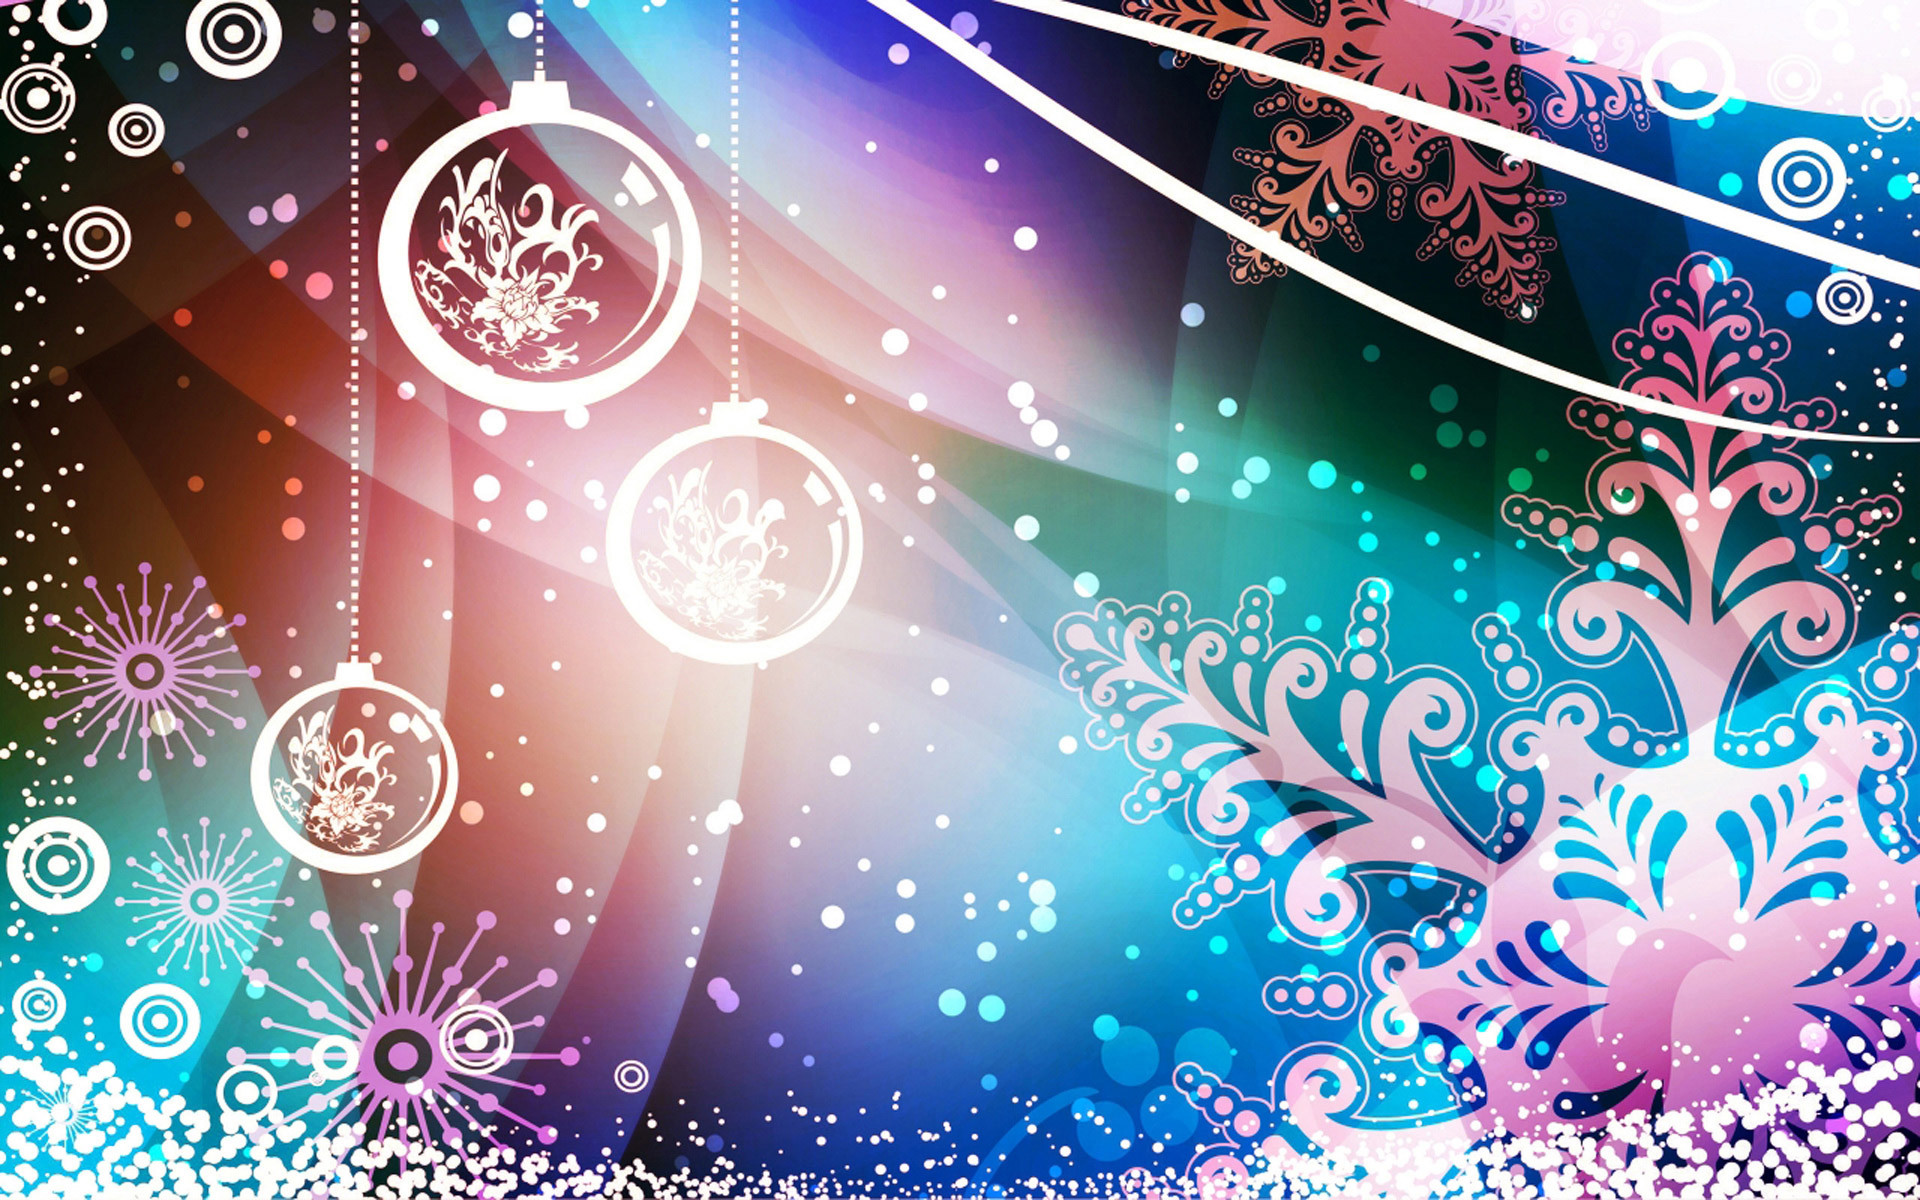 Christmas Backgrounds Free.Christmas Backgrounds For Computers 49 Images